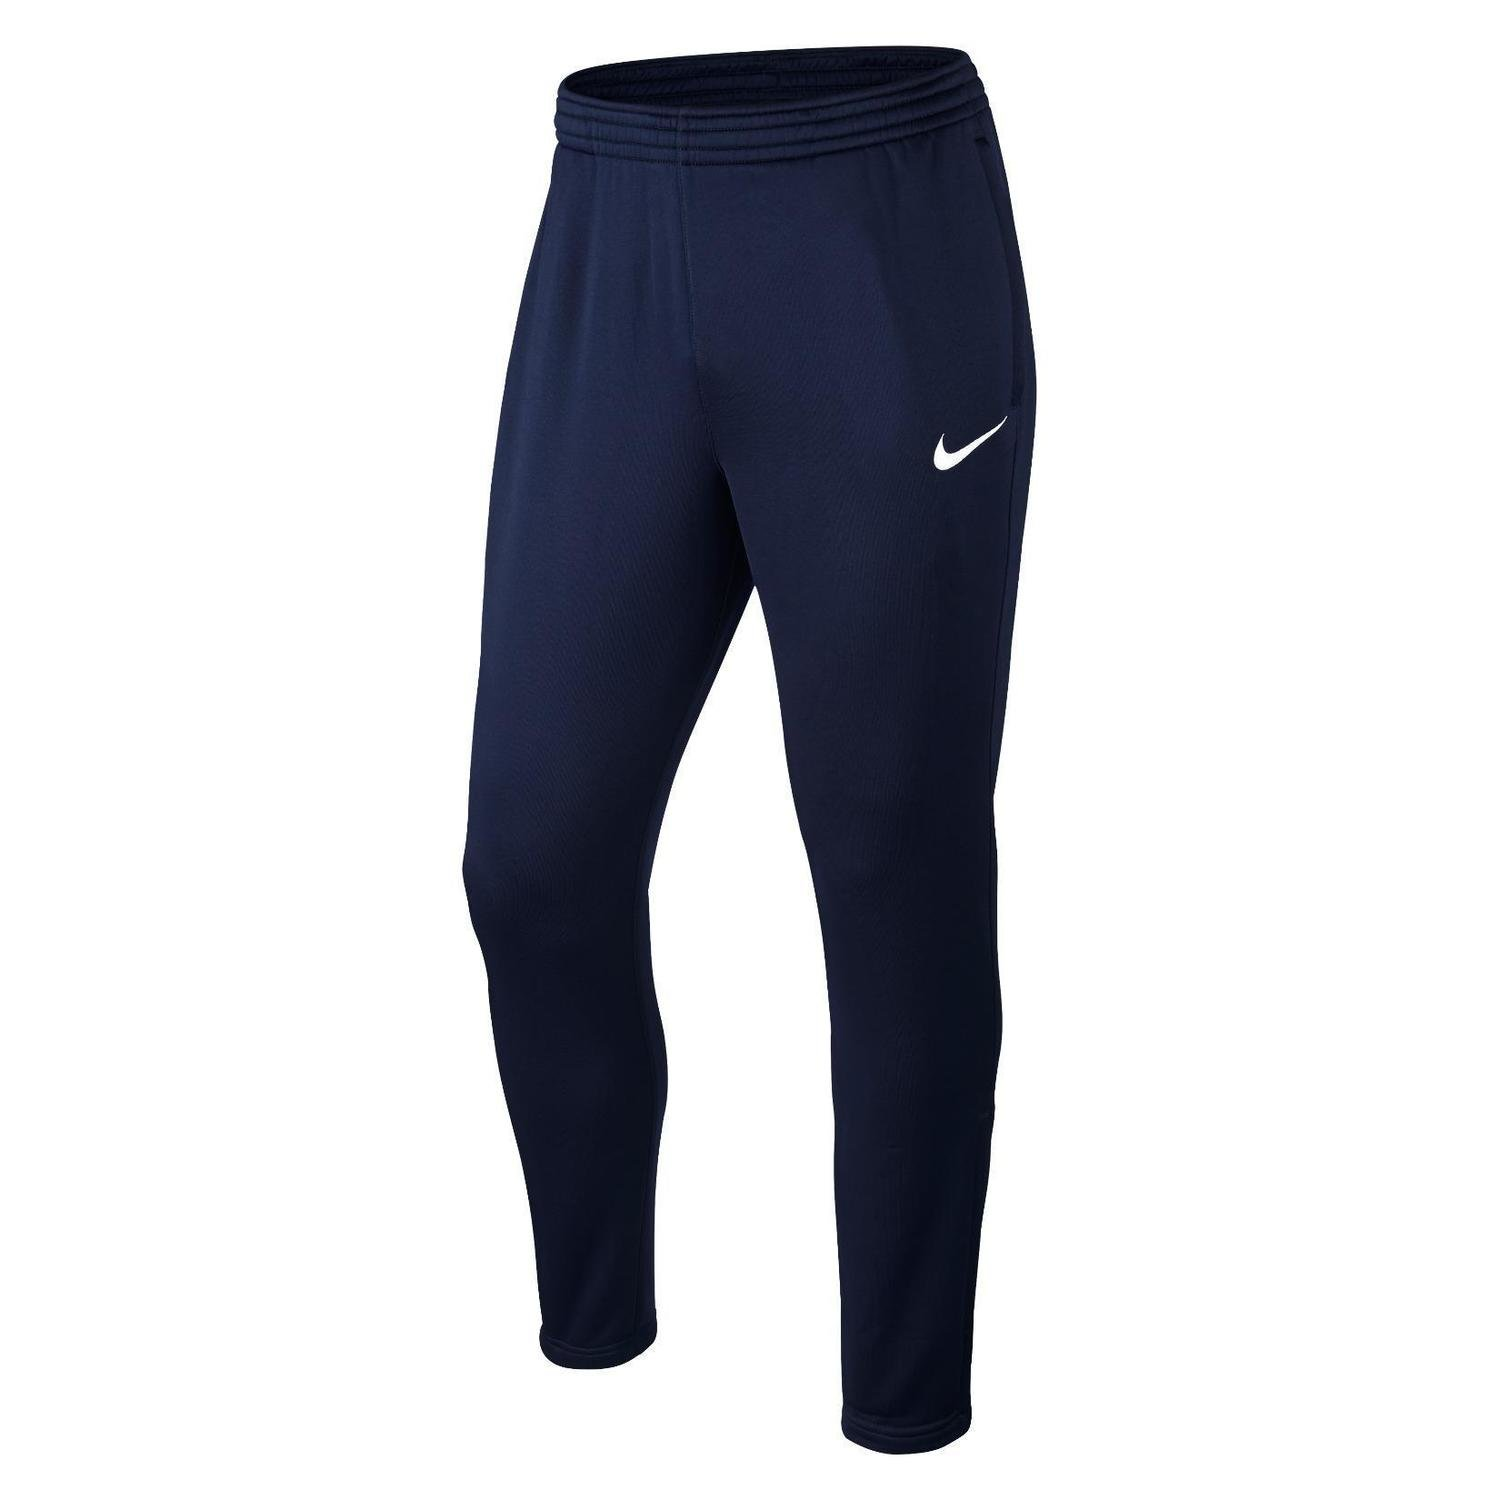 COVID SALE WAS 62.50 - UOWFC 2020 Nike Academy Dri Fit Trackpants - Navy